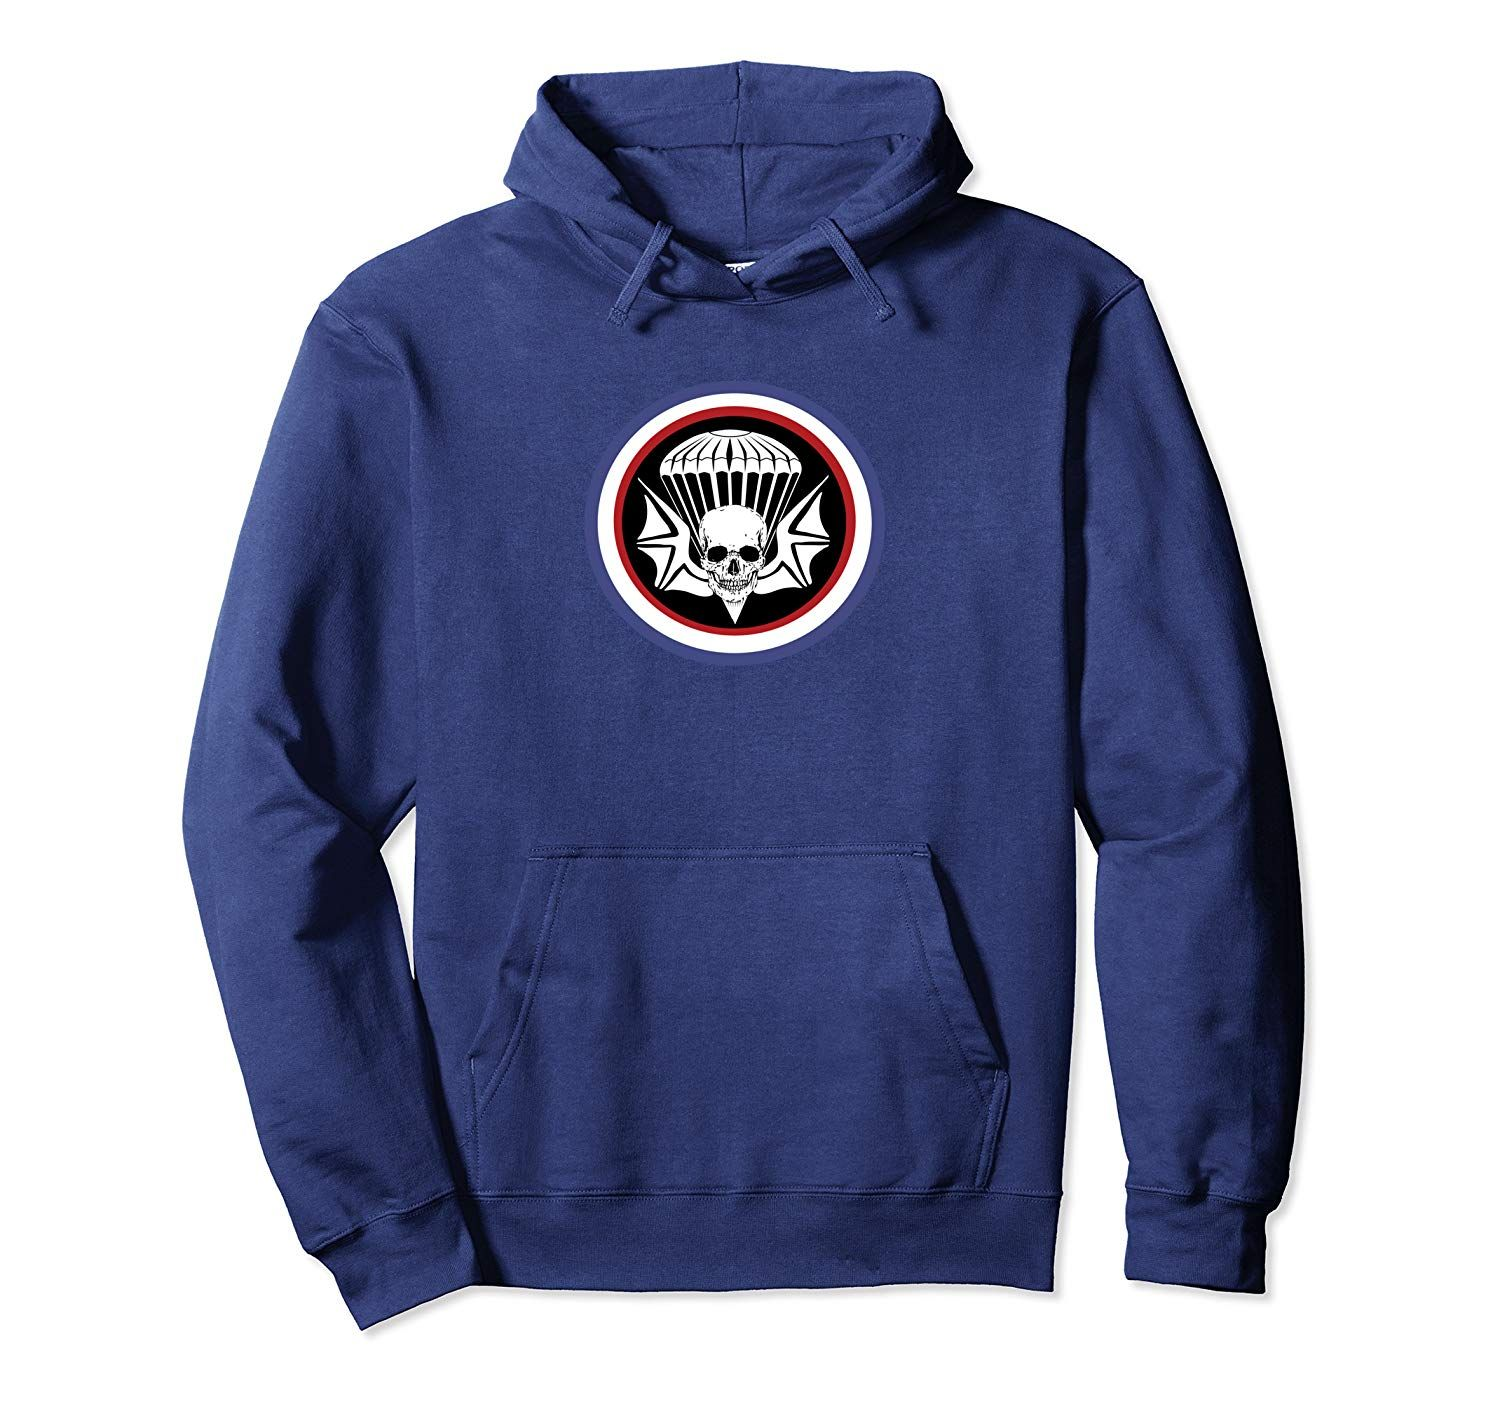 502nd Airborne Infantry Regiment Pullover Hoodie #17thbirthday